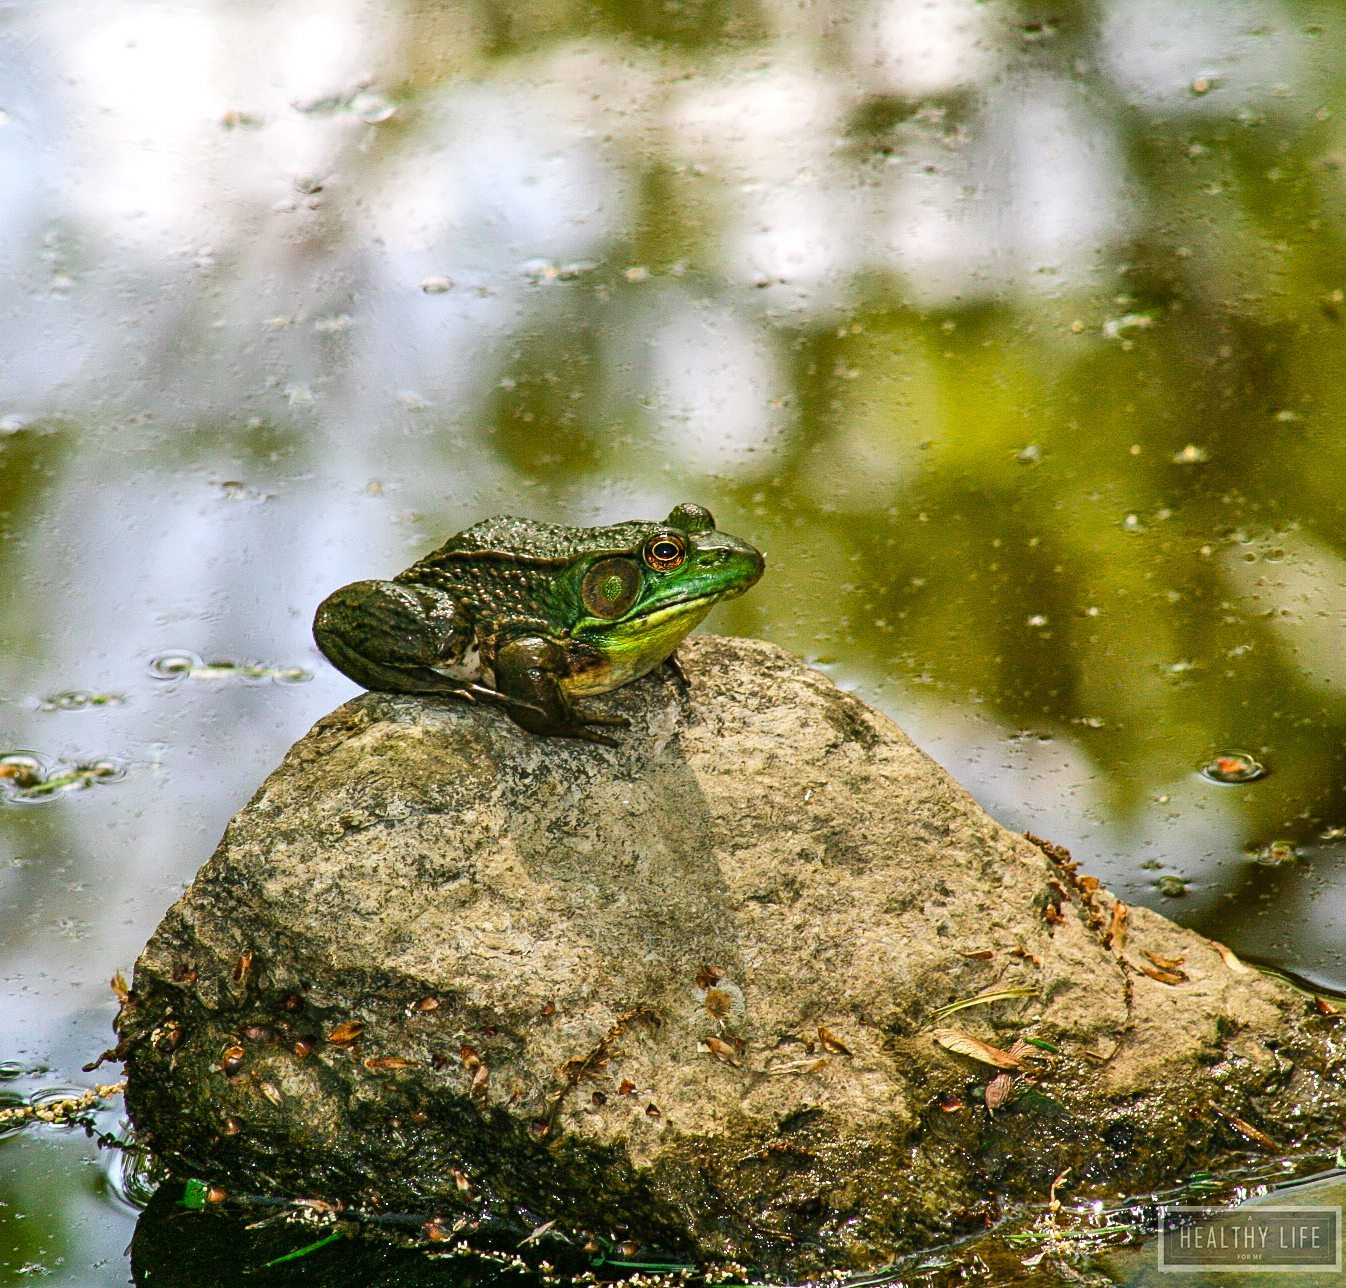 frogs and toads great for your garden a healthy life for me